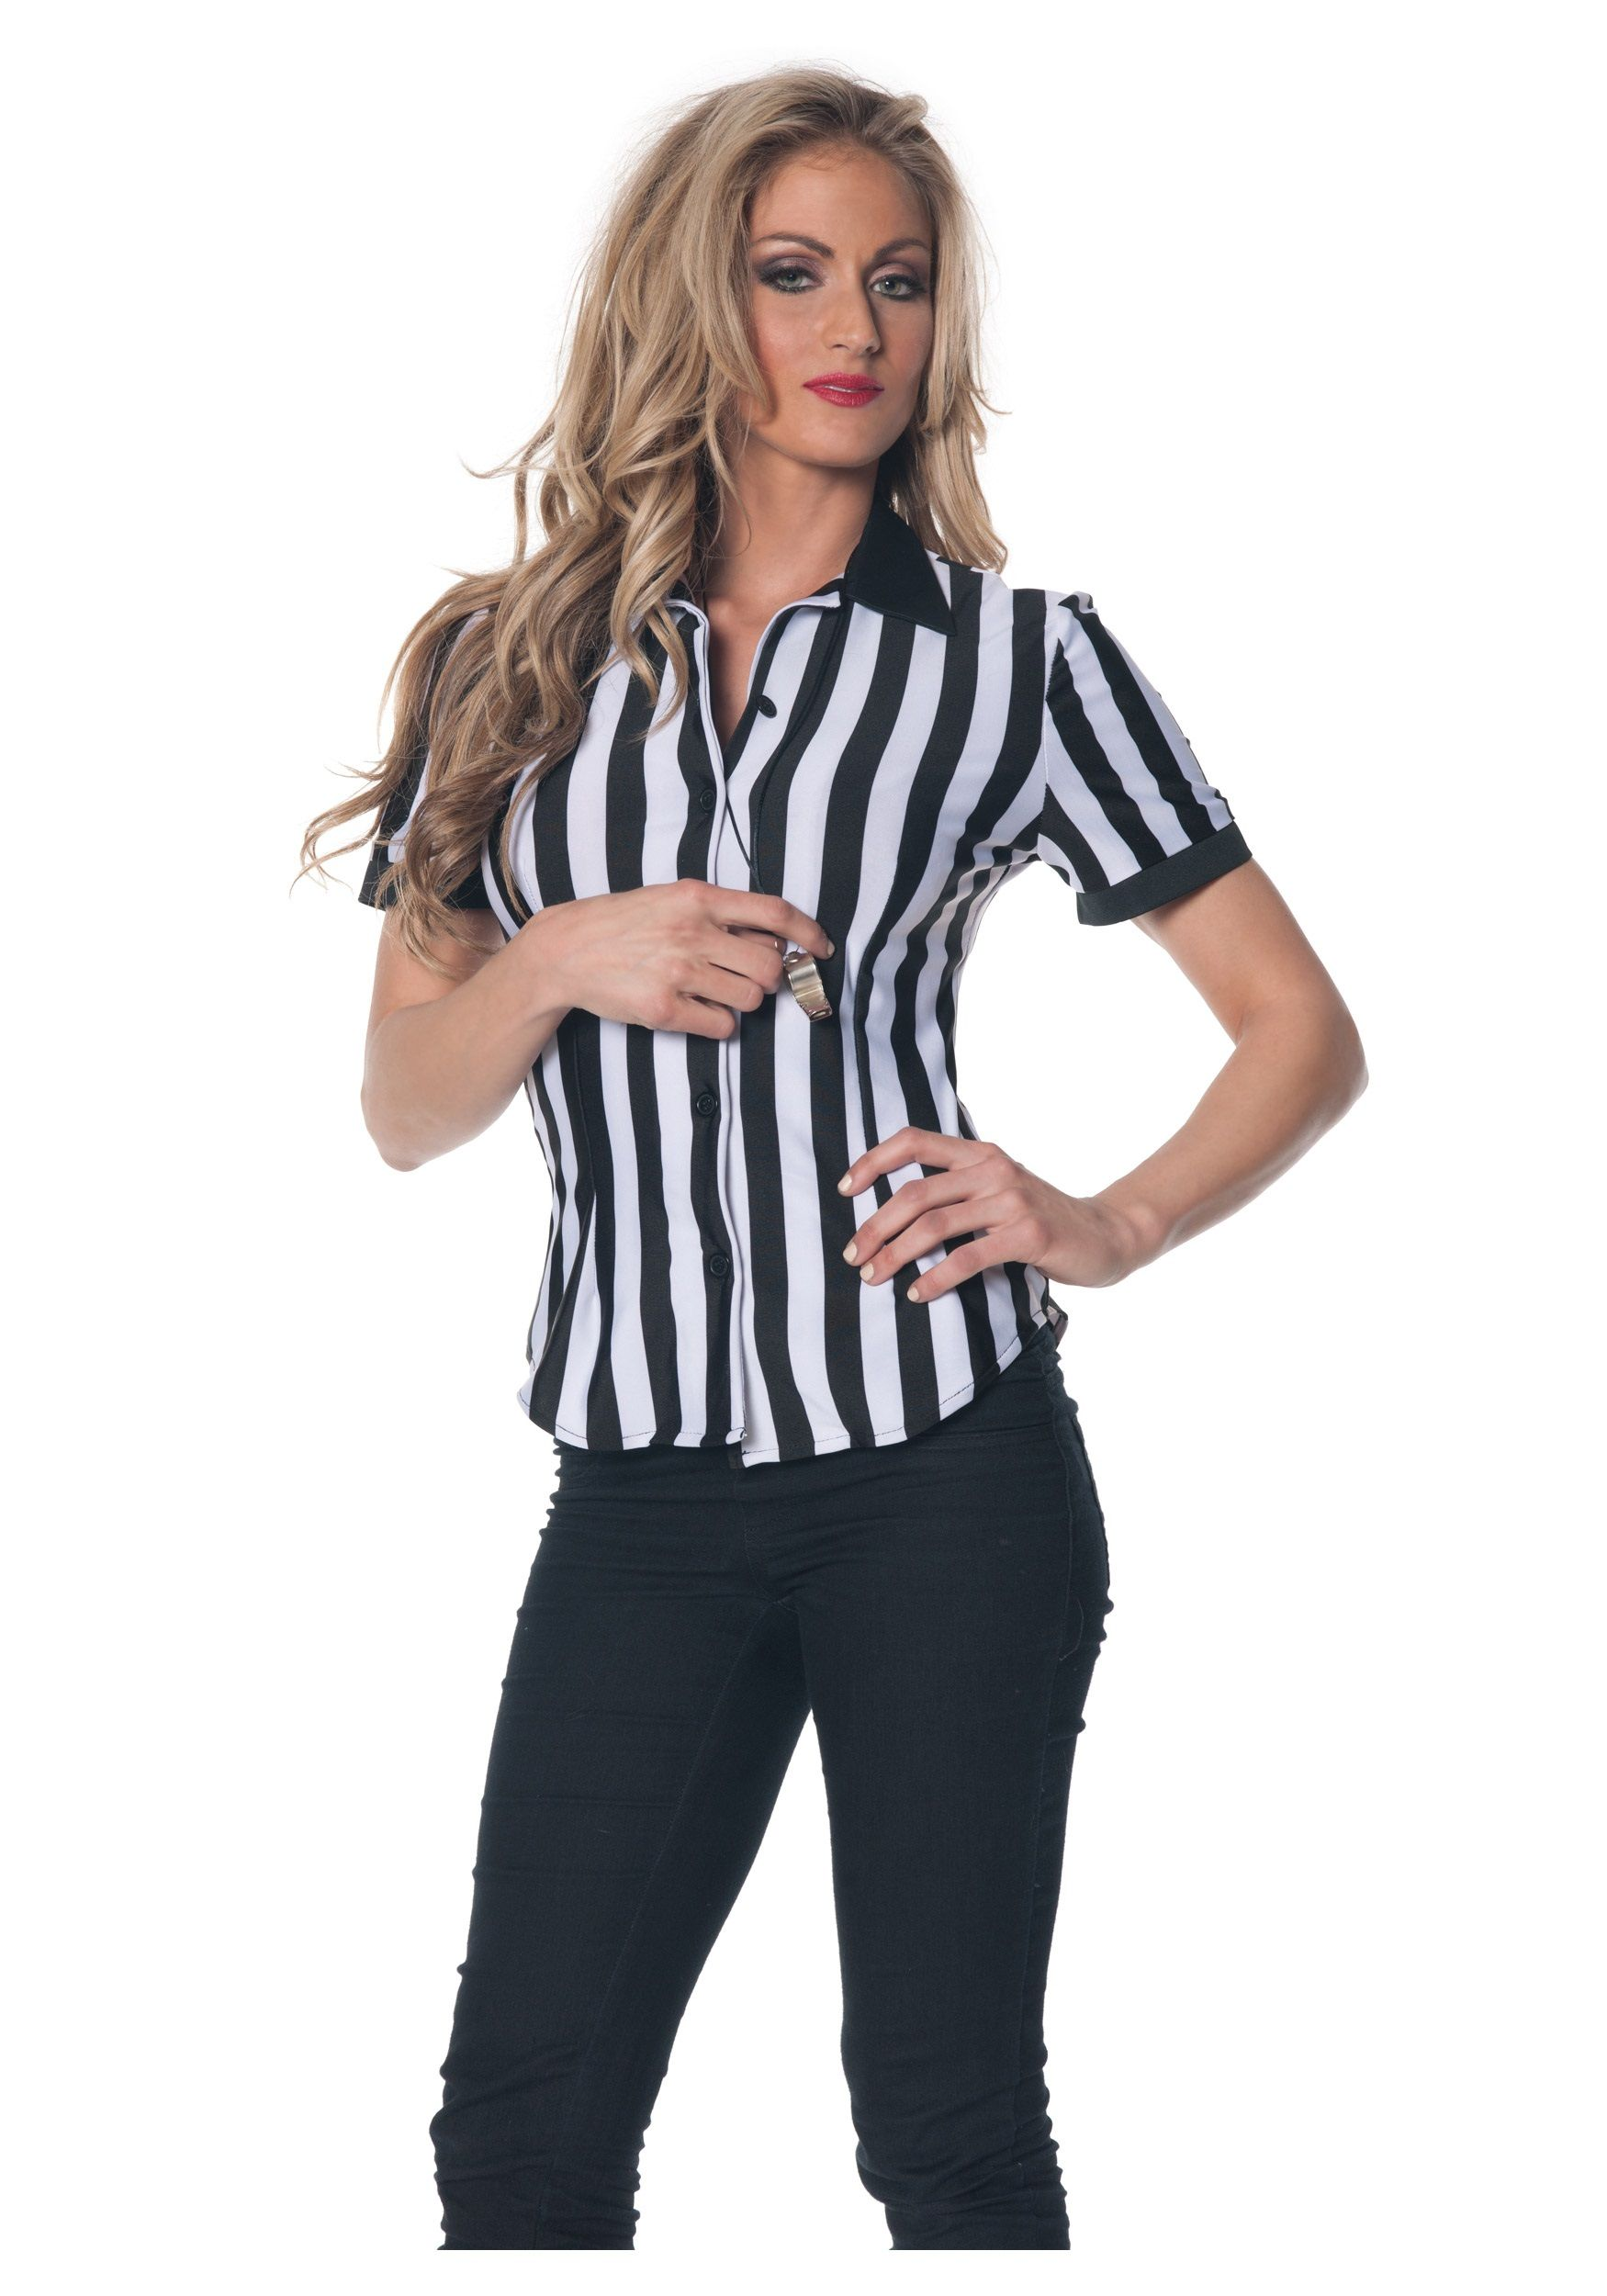 ref costumes for women  b6013c18d